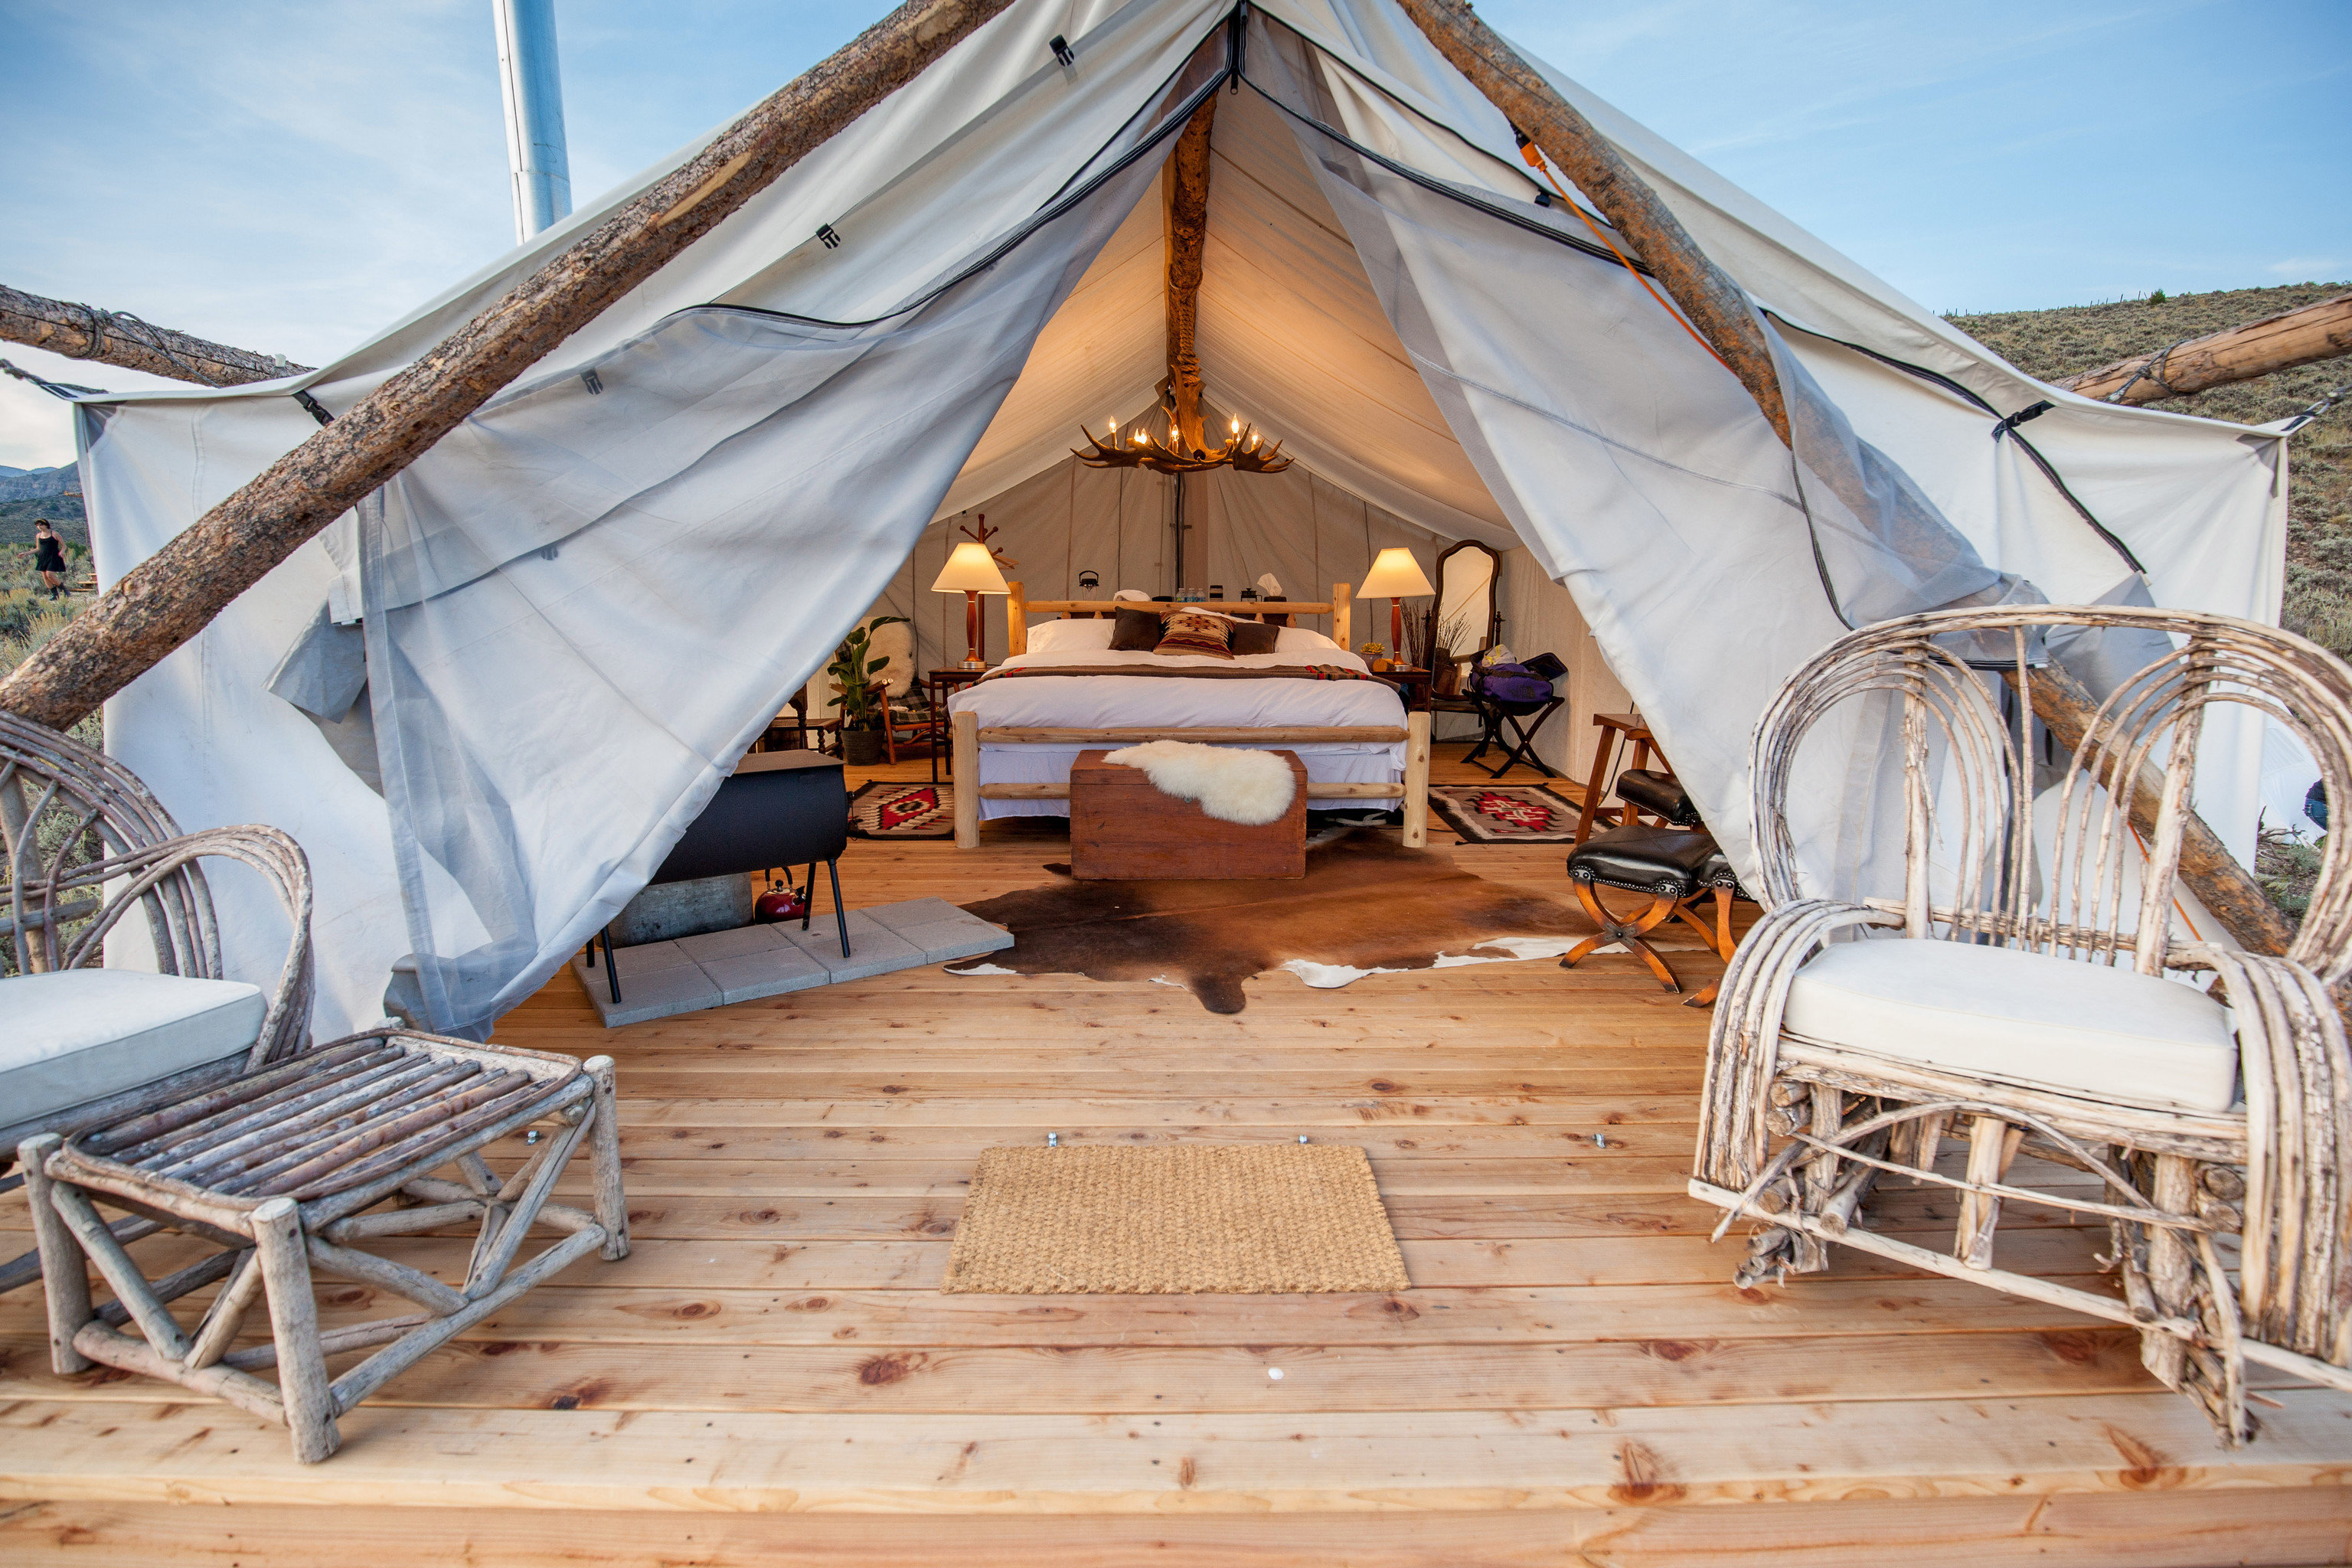 Glamping Outdoors + Adventure Weekend Getaways tent wooden cottage outdoor structure hut estate Resort Villa